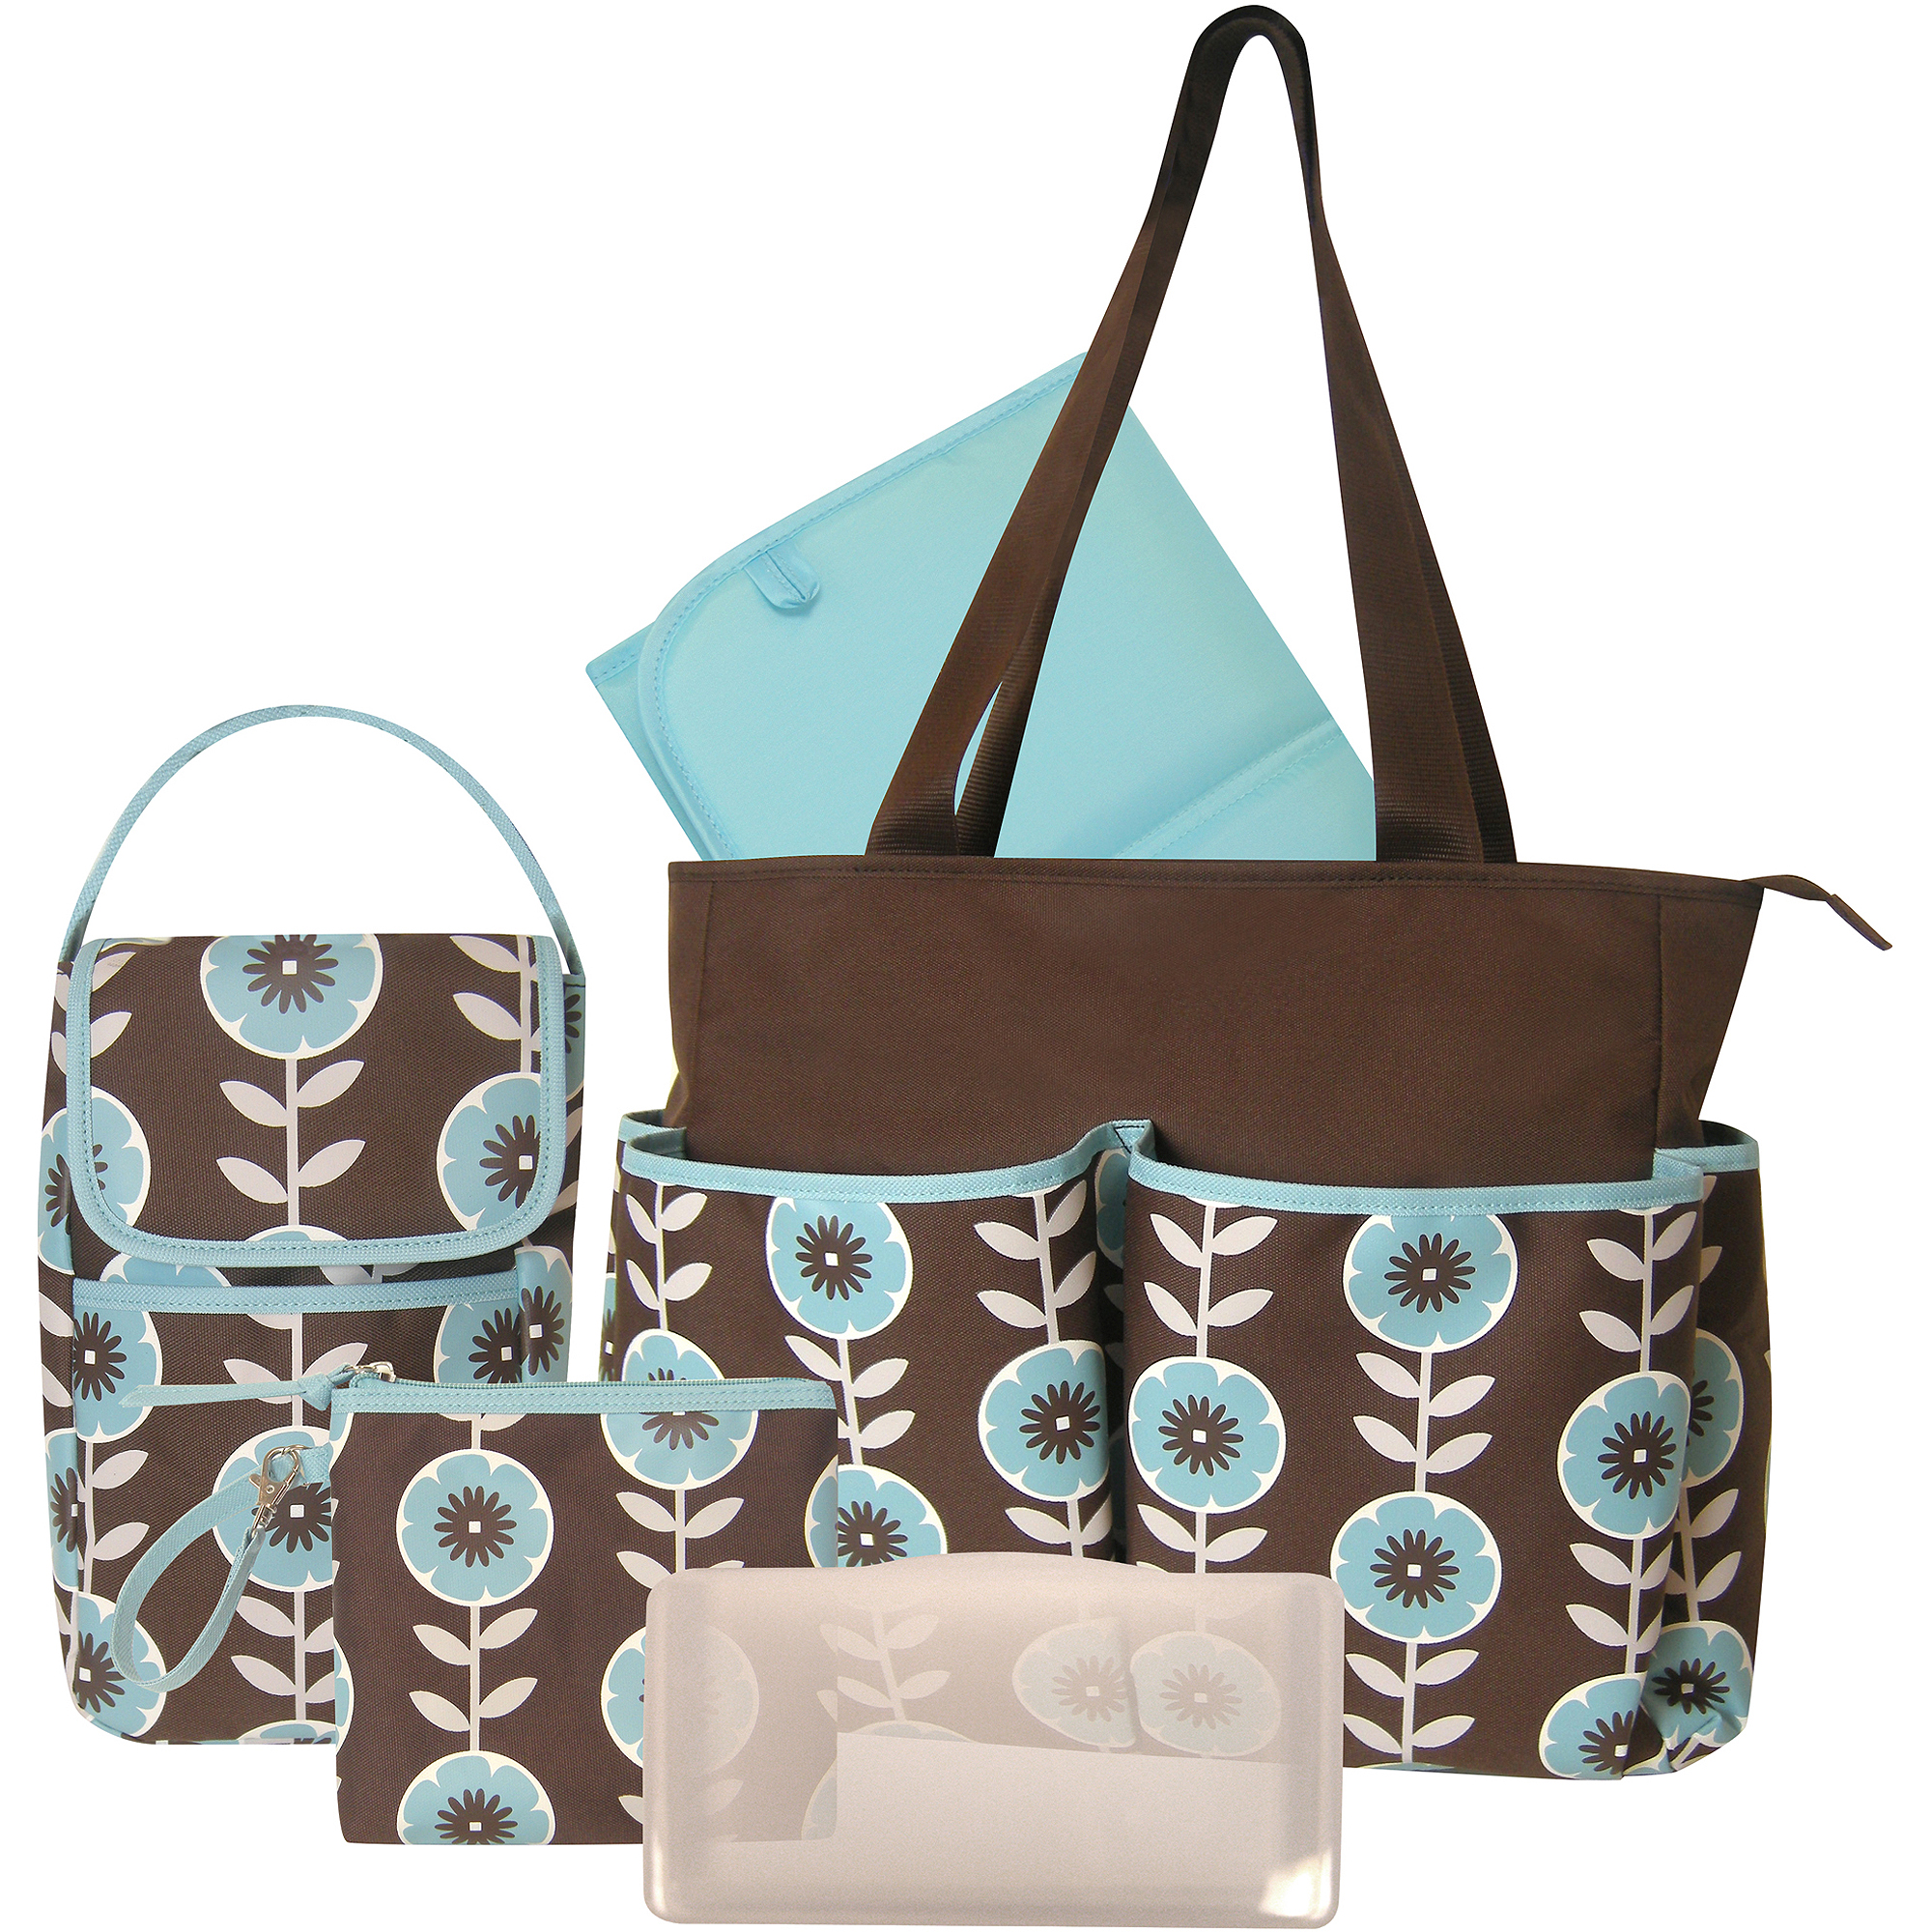 baby essentials floral 3 piece diaper bag set with bonus bottle bag walmartcom - Baby Diaper Bags